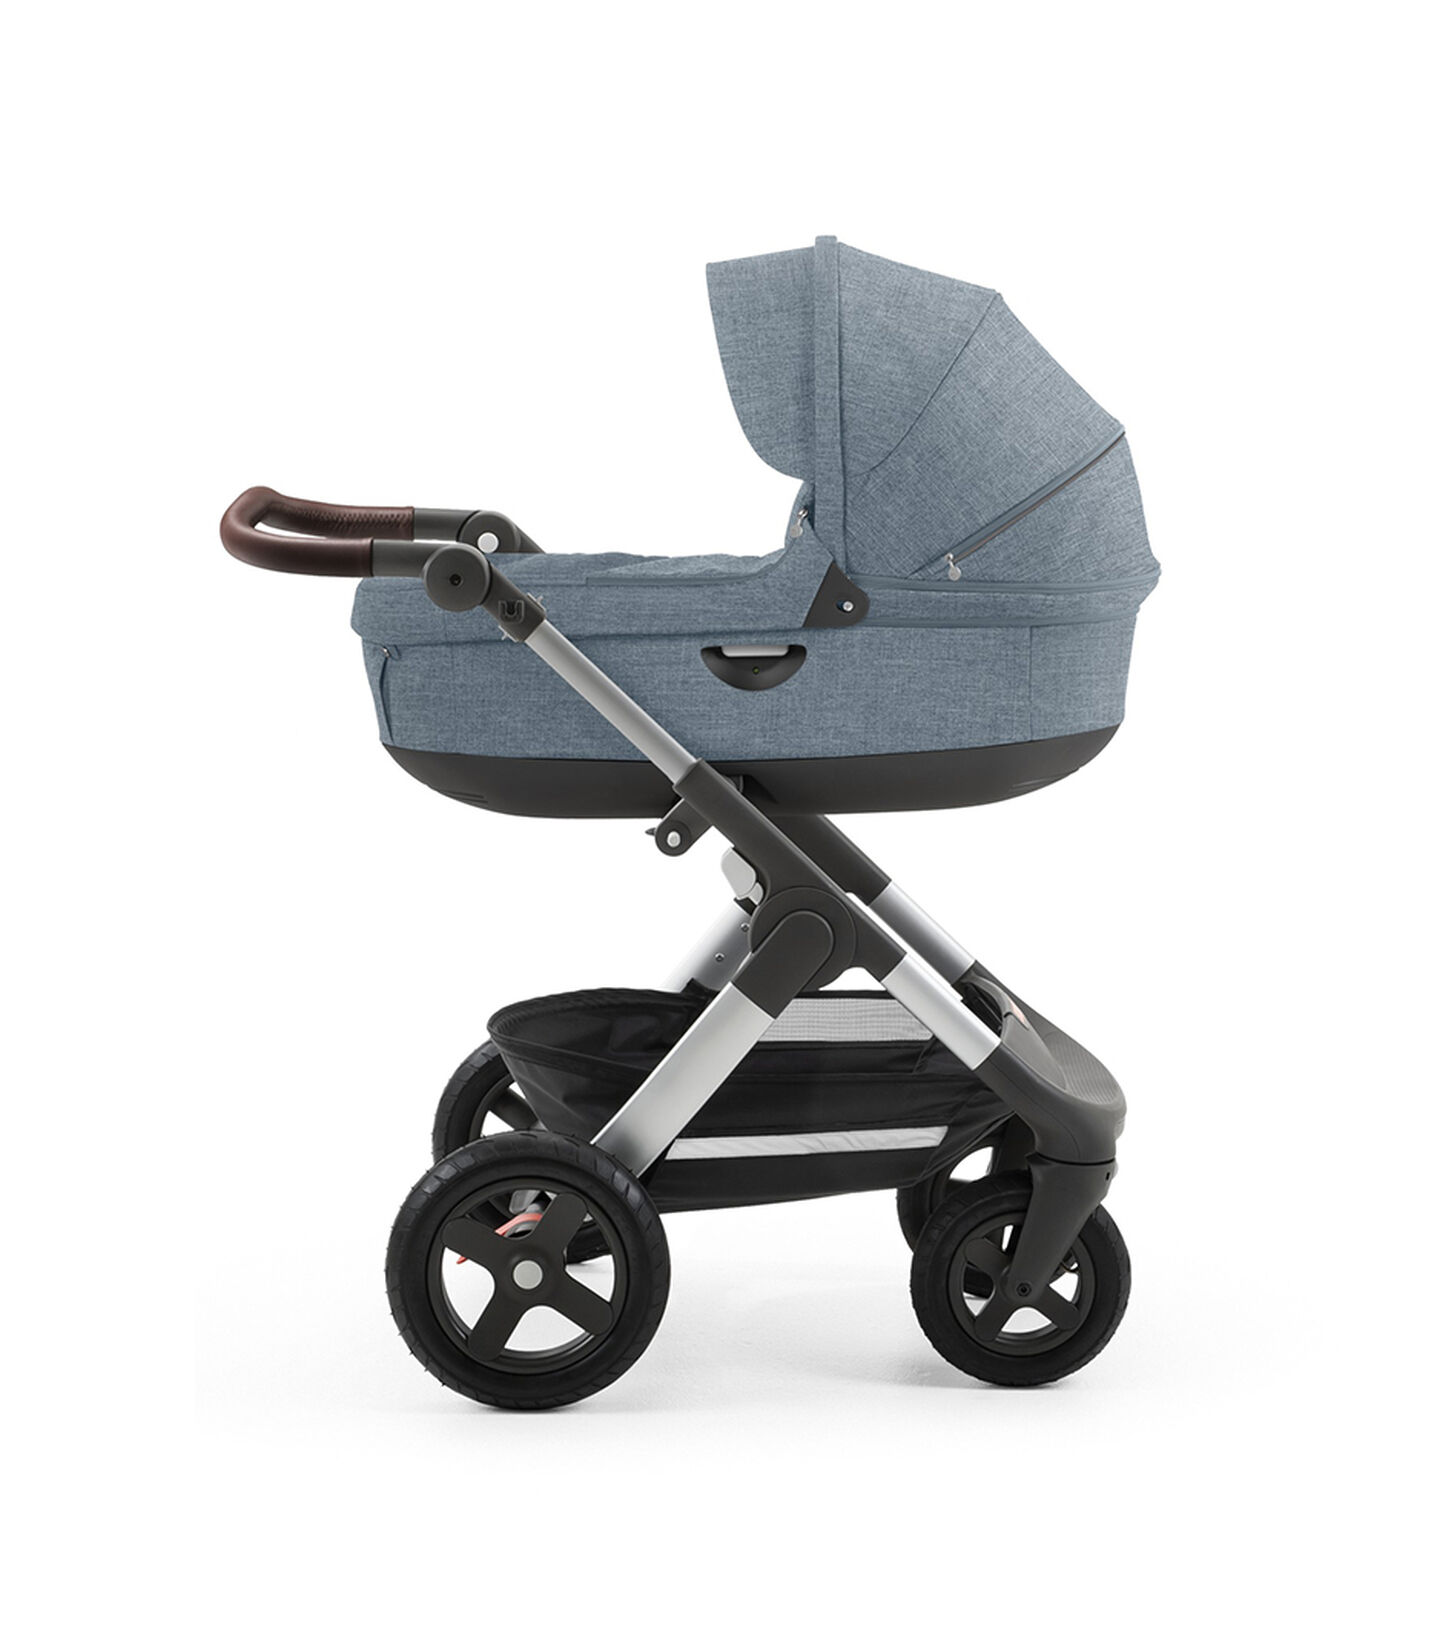 Stokke® Trailz™ with silver chassis and Stokke® Stroller Carry Cot, Urban Blue. Terrain Wheels.